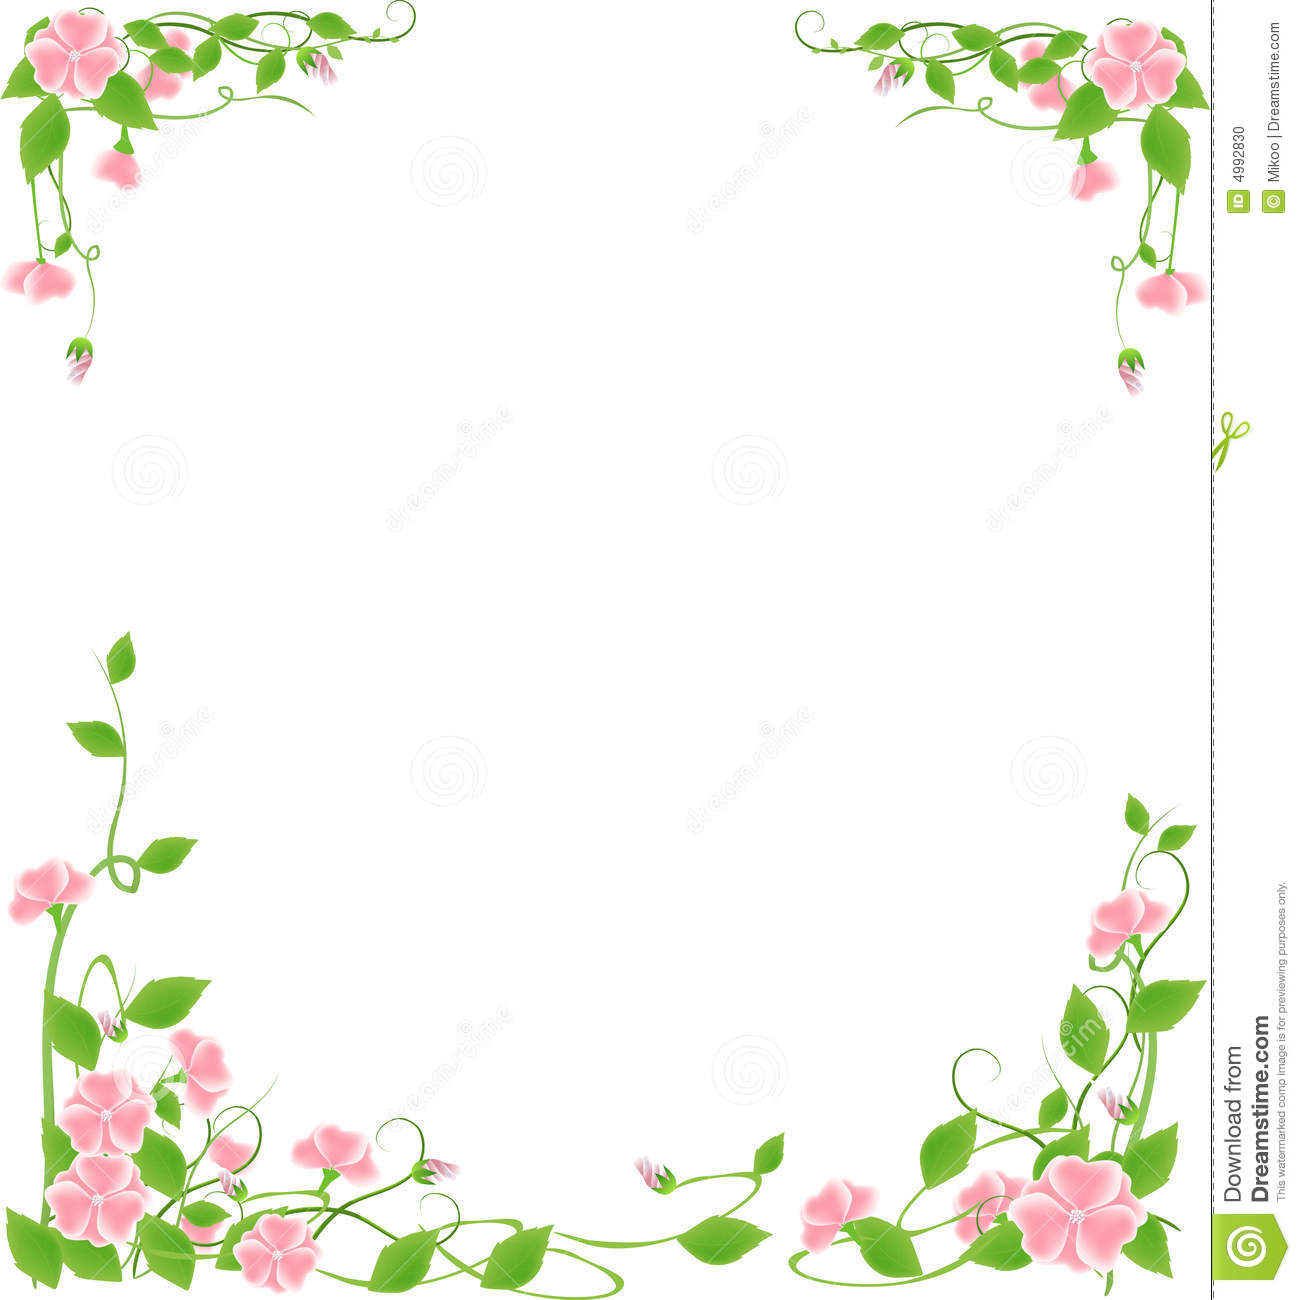 Abstract grunge flower frame ,vector illustration.